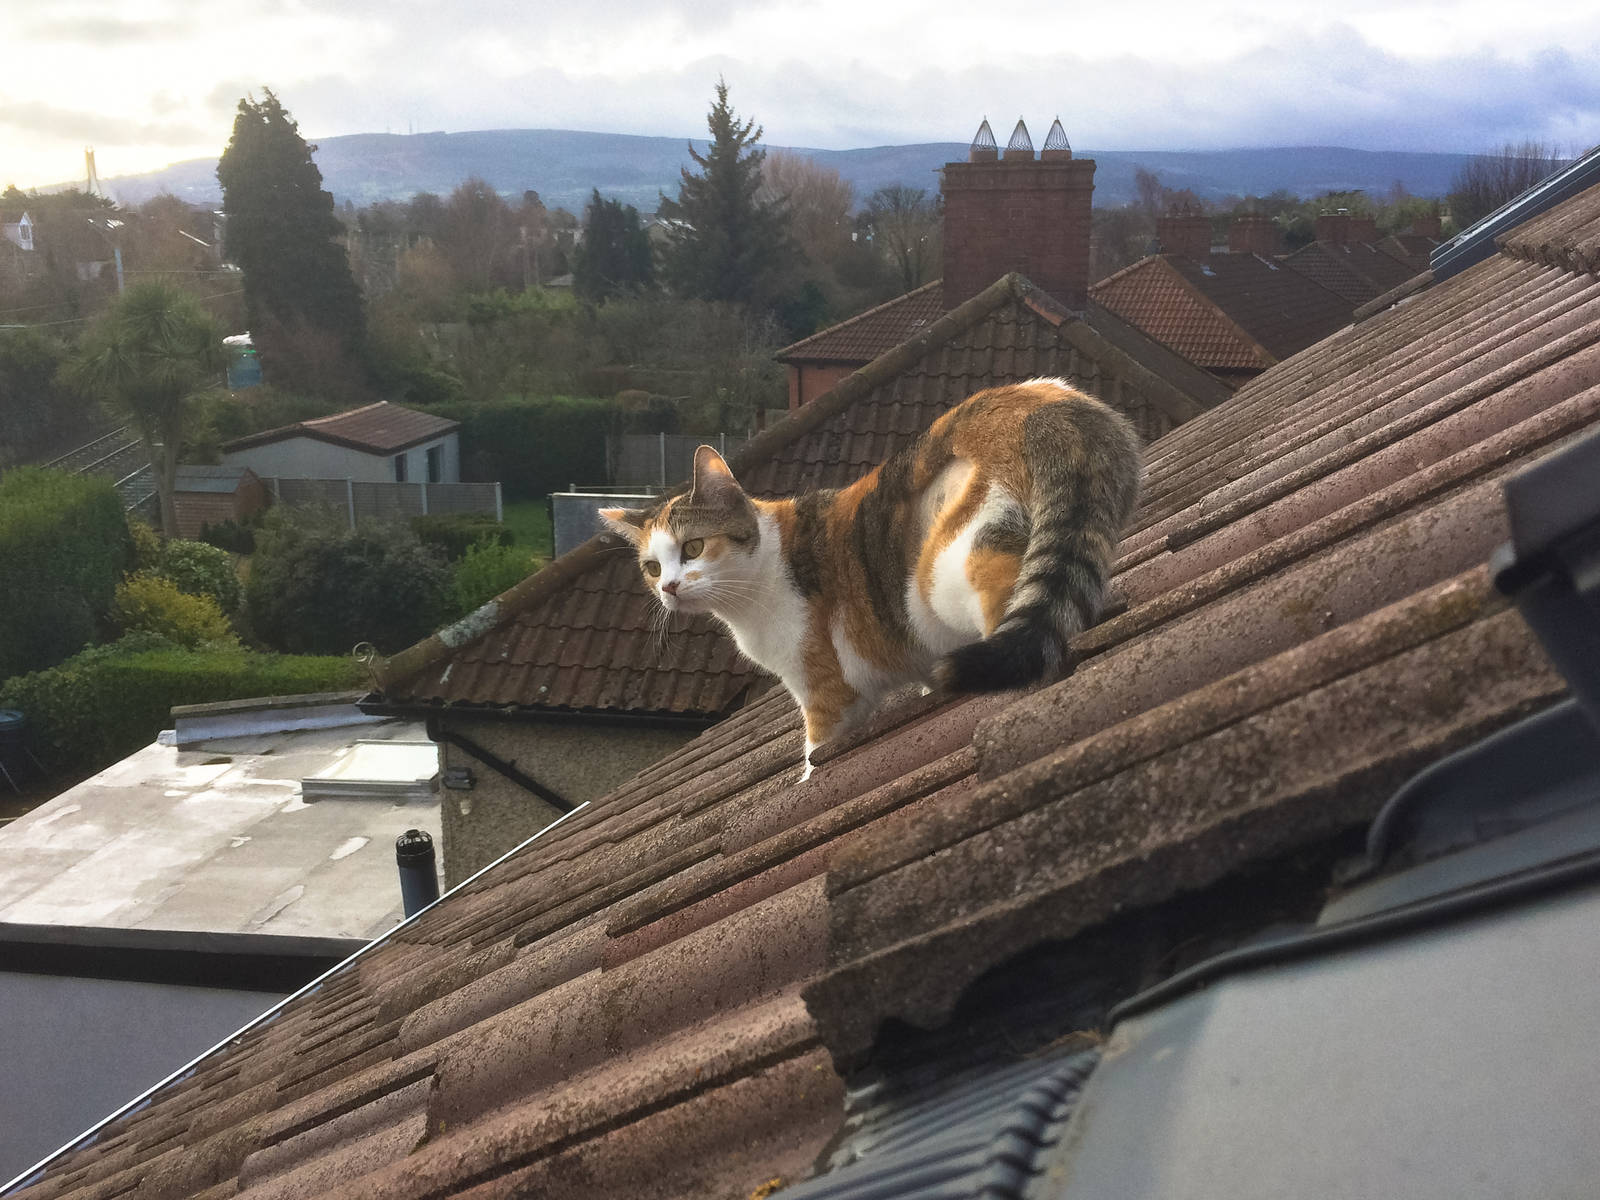 Cookie on the roof of the house, February 28